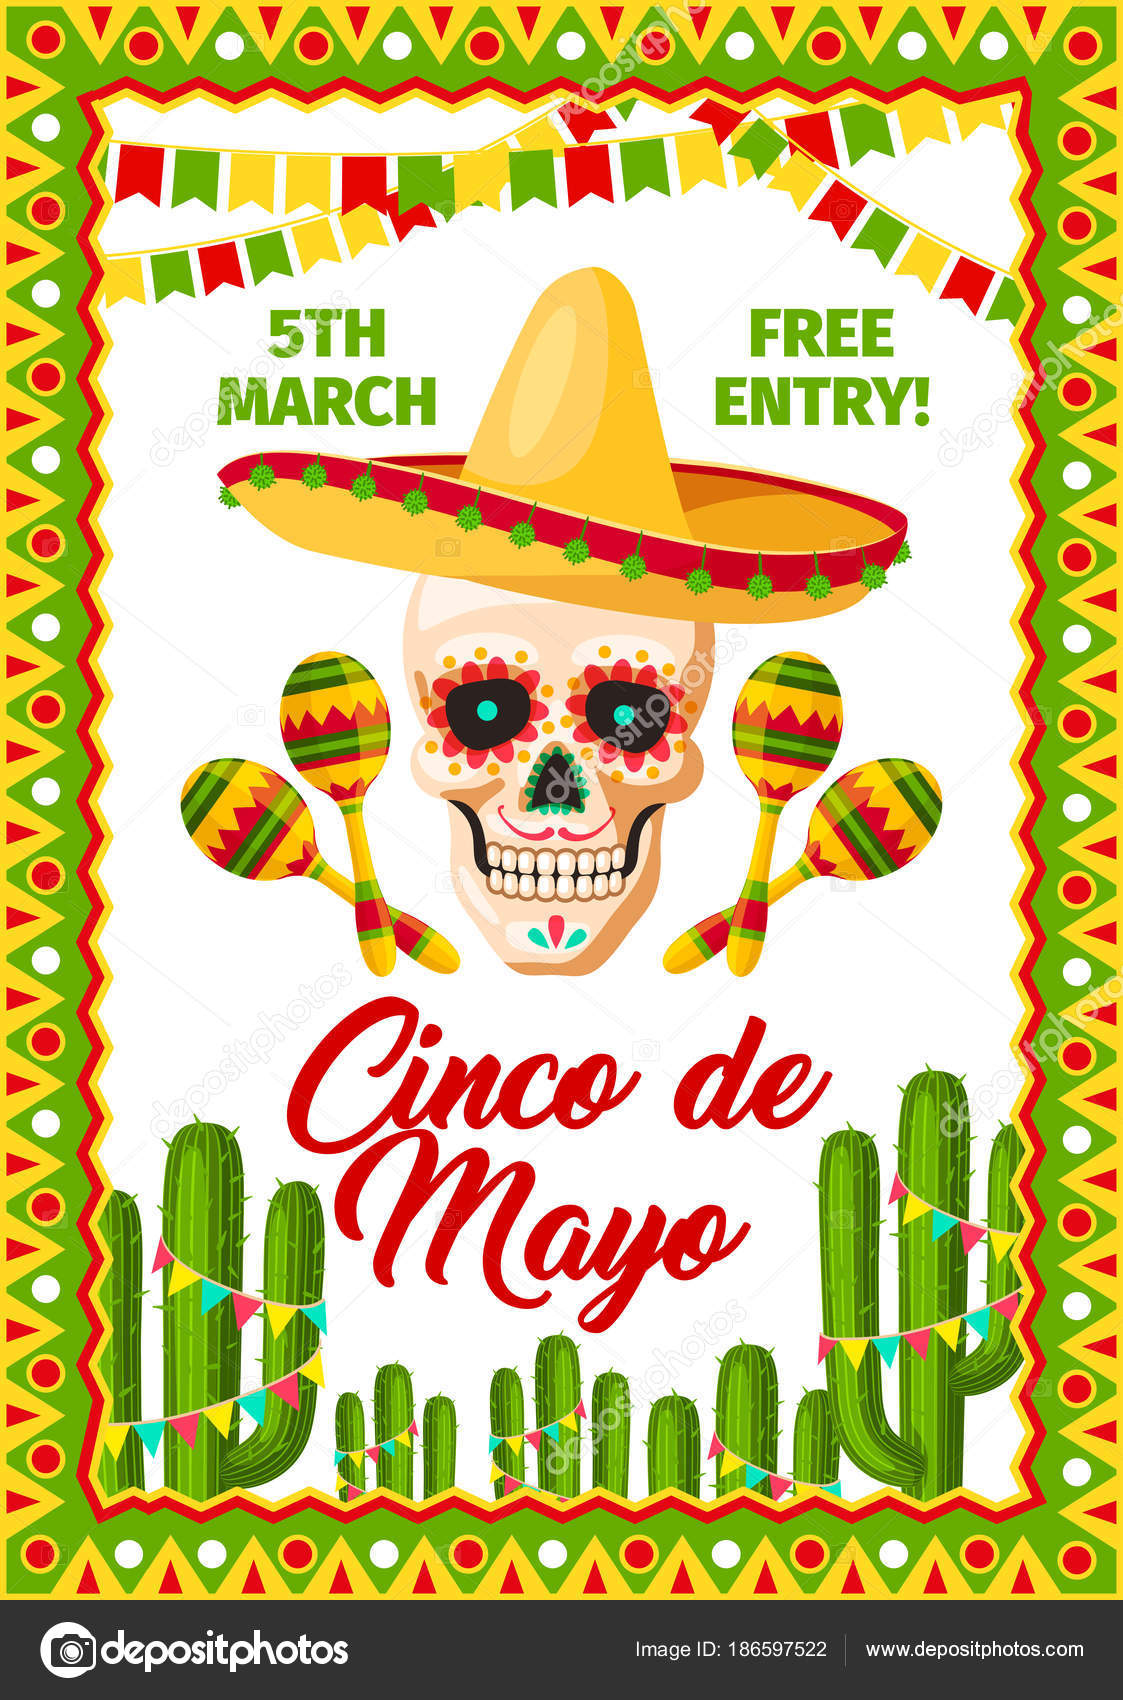 Cinco de mayo mexican party vector invitation stock vector cinco de mayo mexican holiday fiesta invitation card for mexico traditional party celebration vector poster of mexican sombrero on skull and maracas stopboris Images